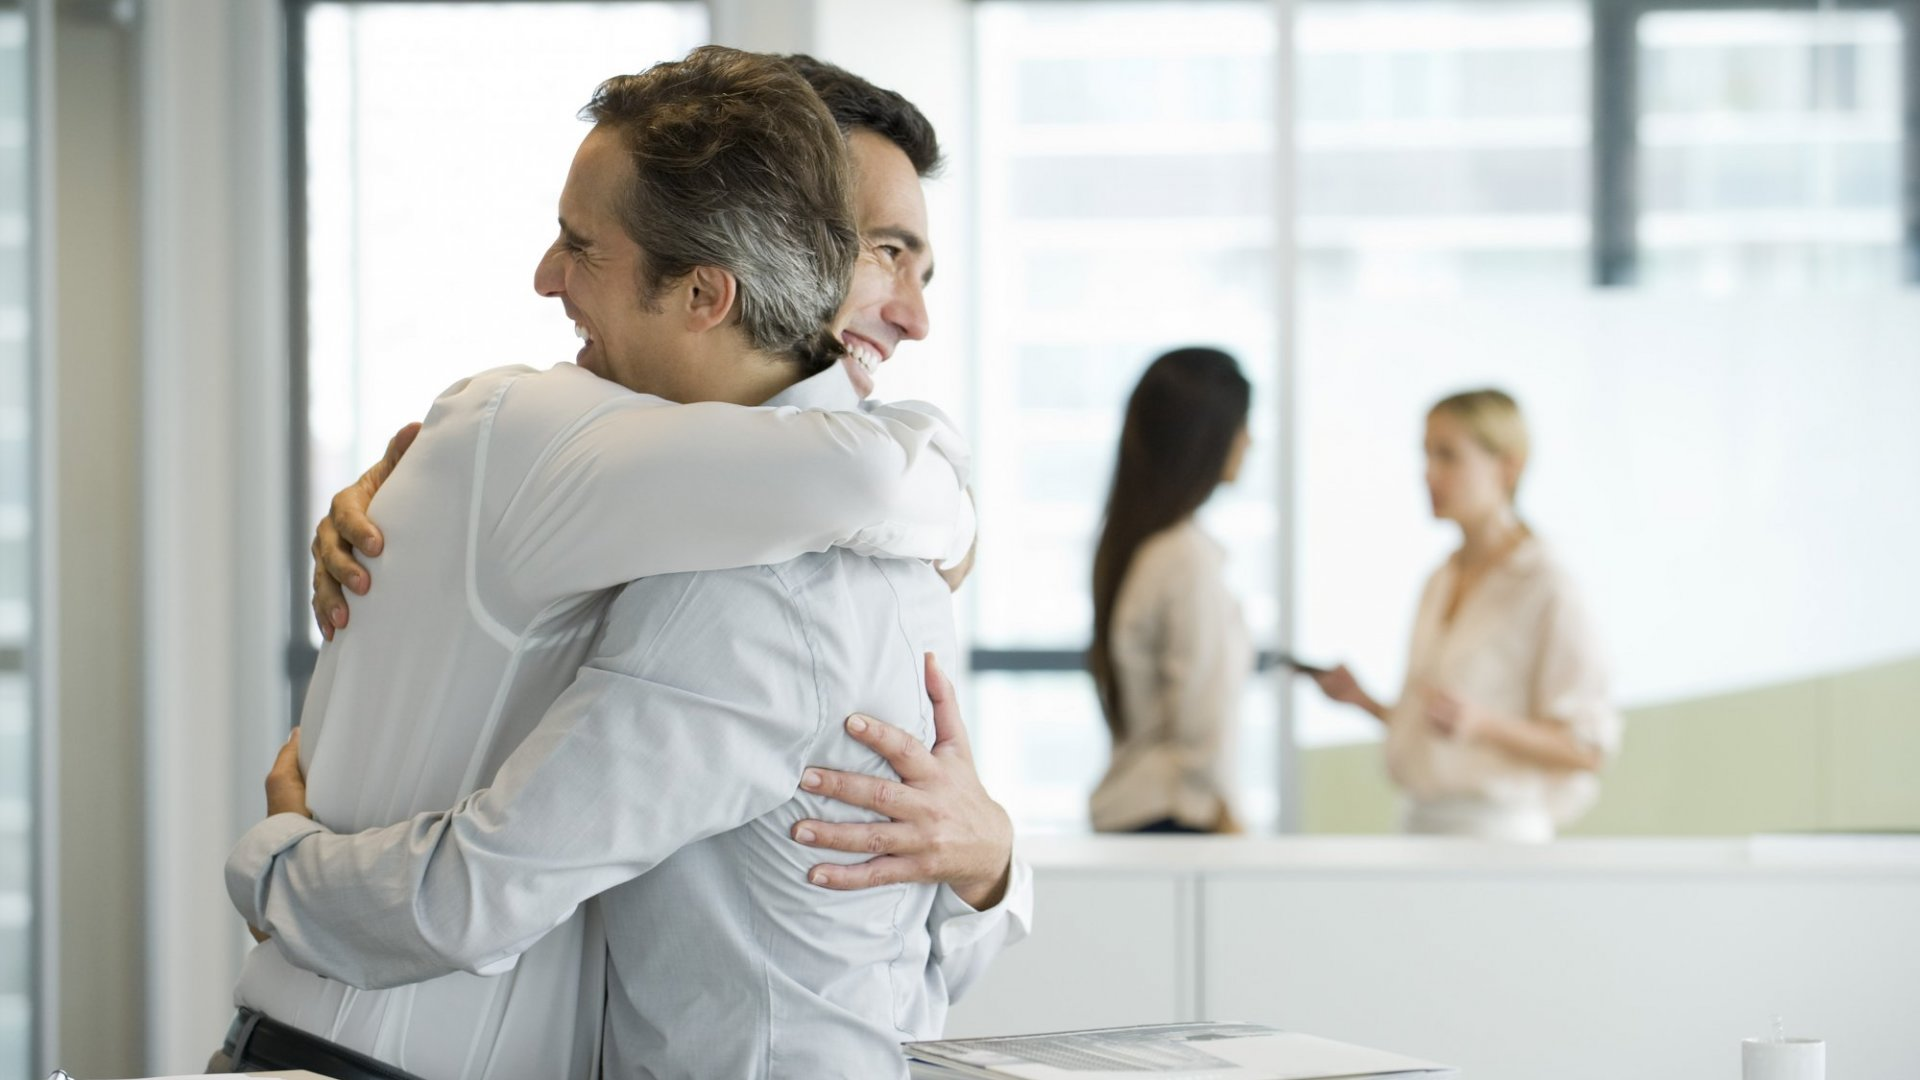 6 Powerful Ways to Thank Your Team for Being Awesome